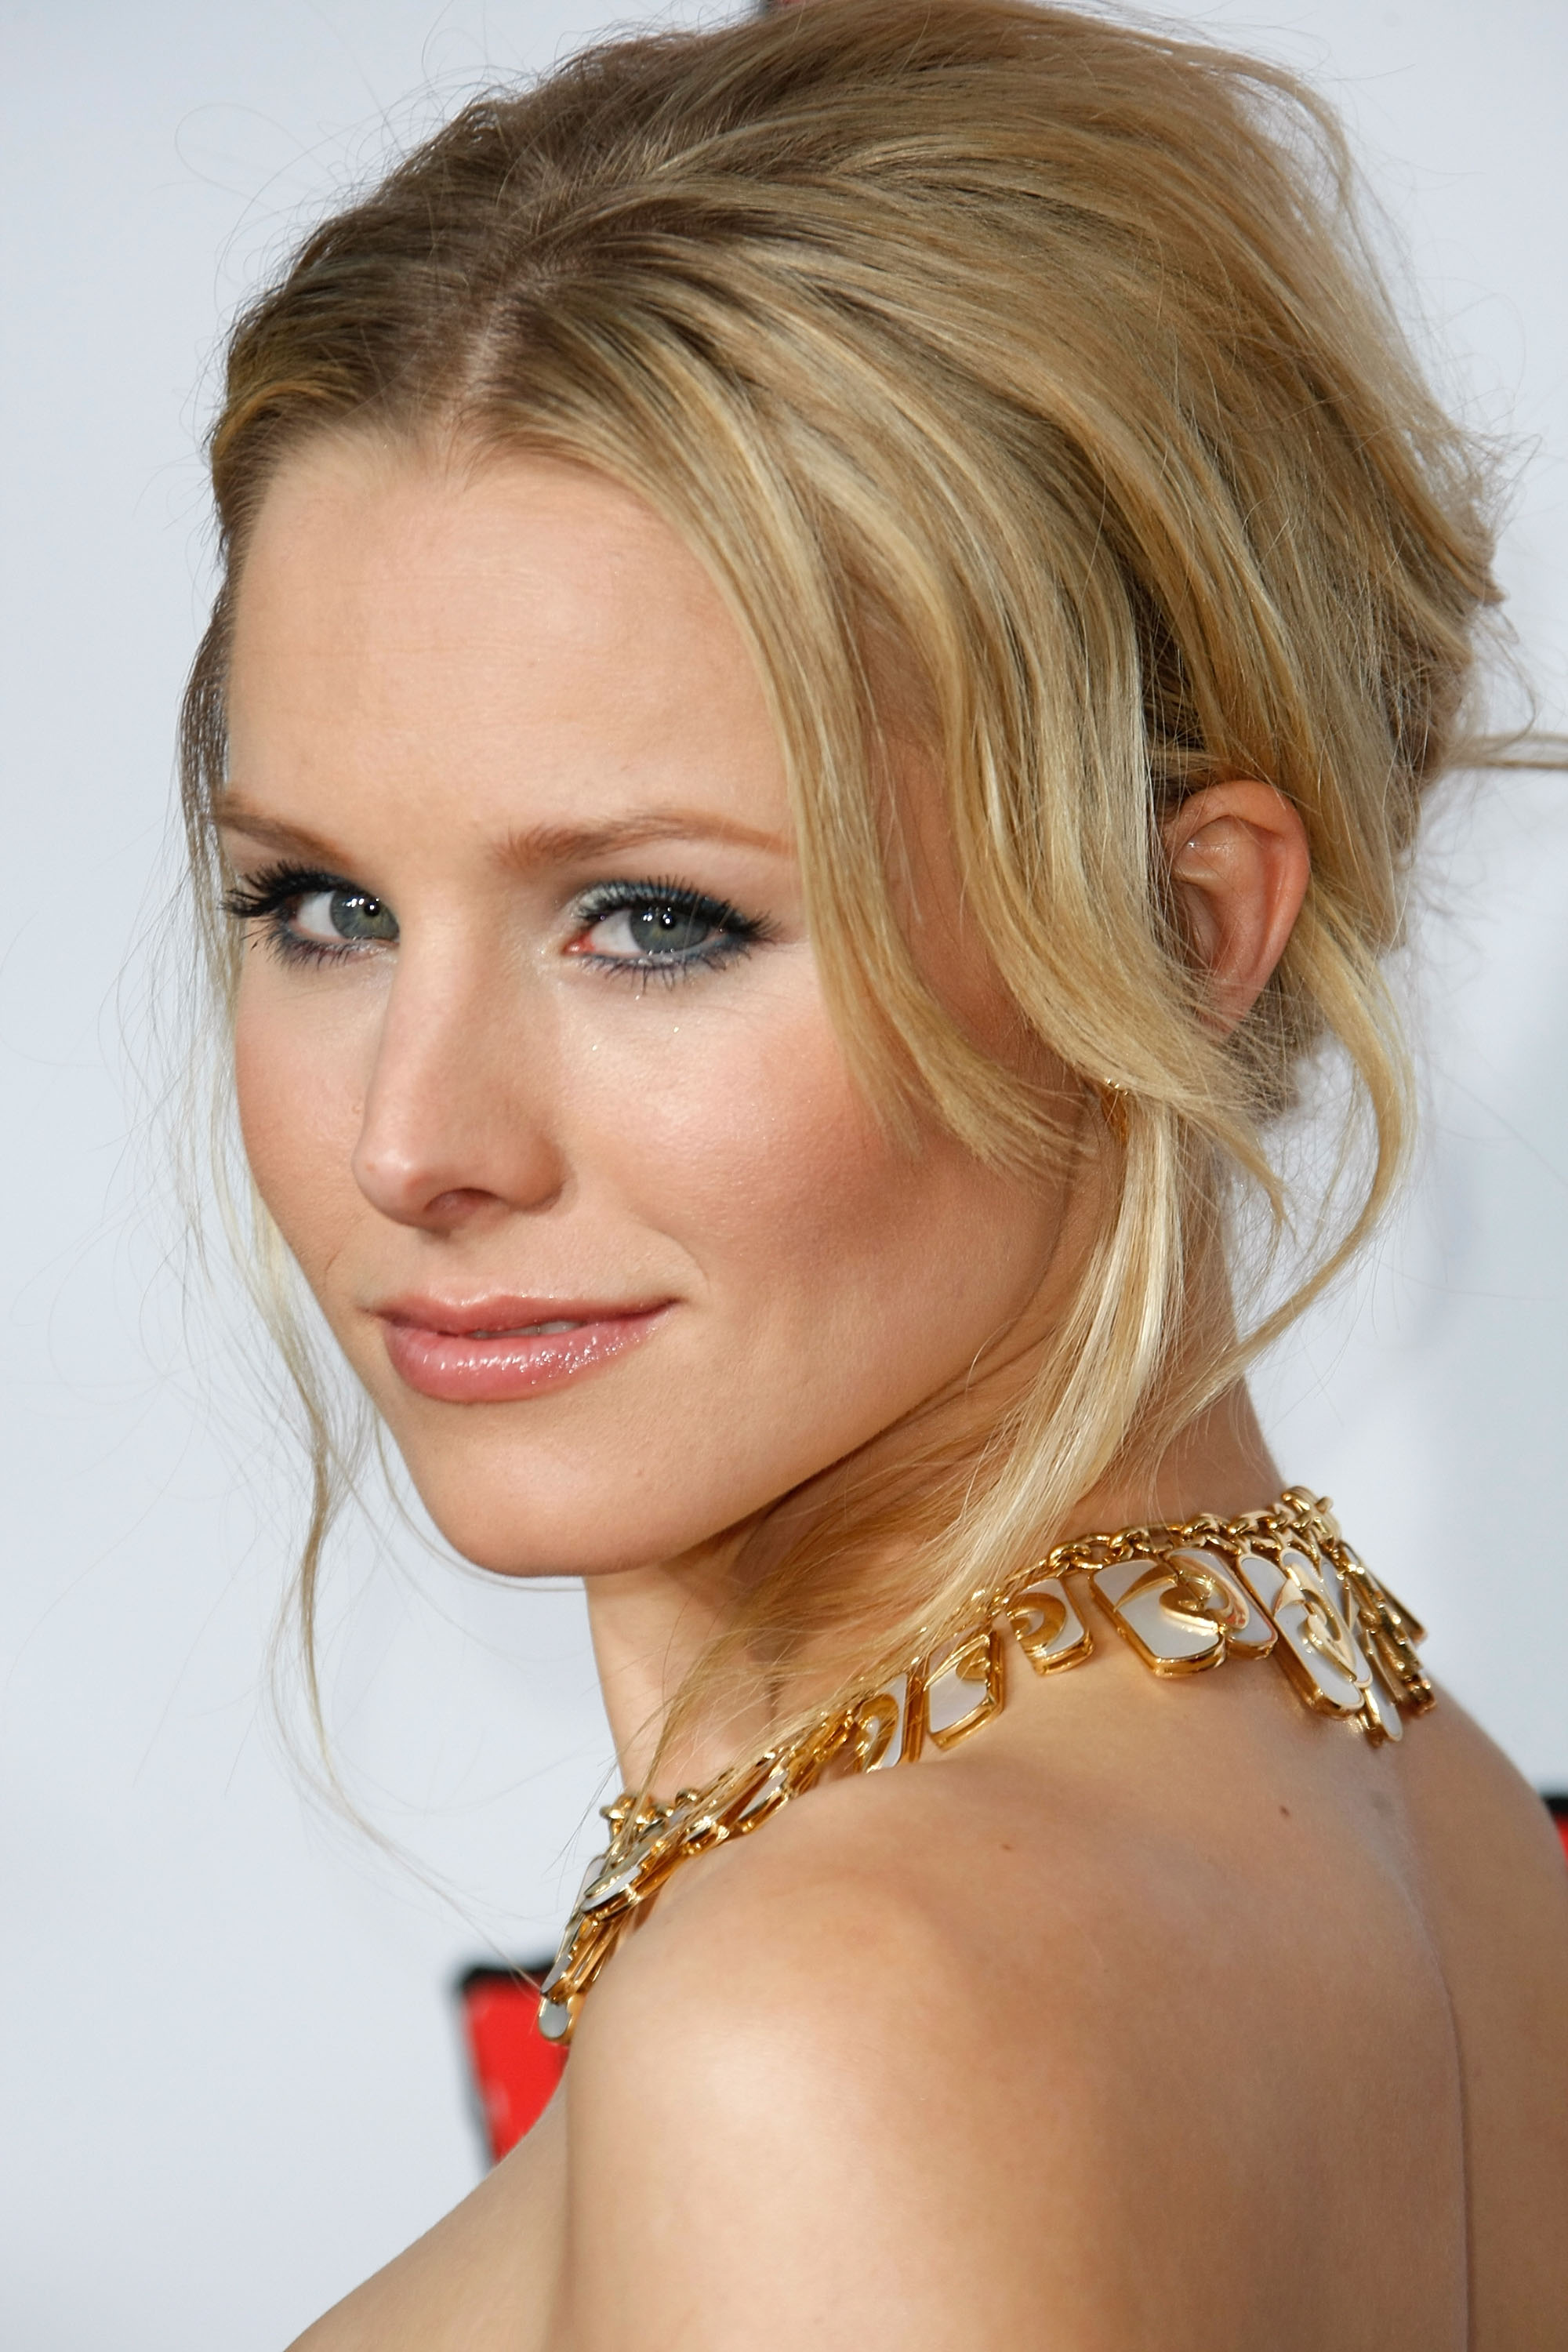 94999_Kristen_Bell-Forgetting_Sarah_Marshall_premiere_in_Hollywood_132_122_689lo.jpg